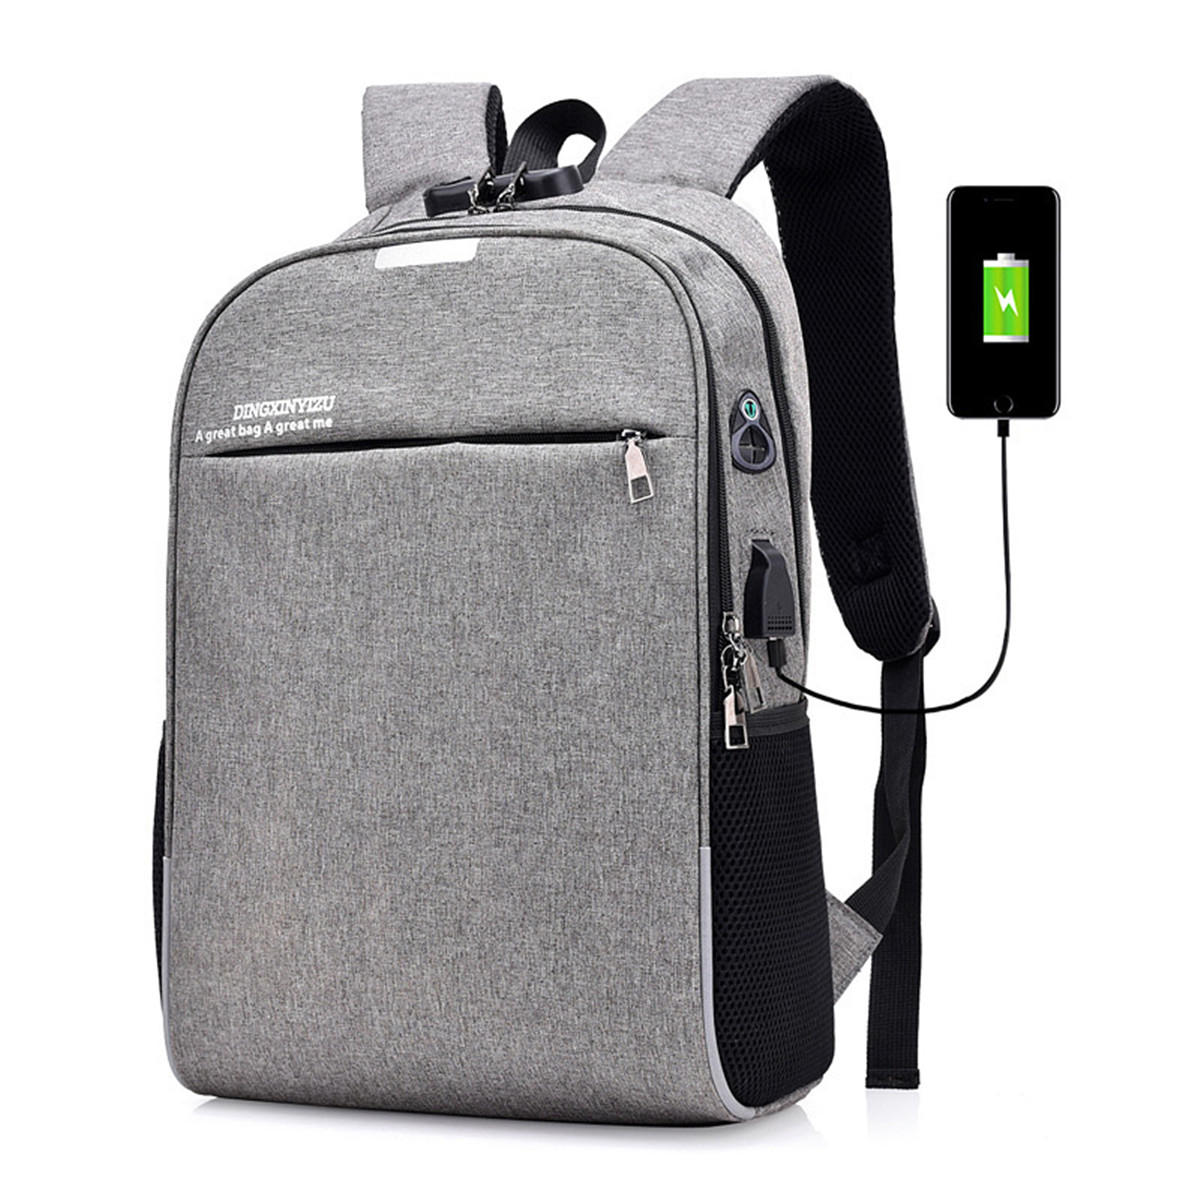 Image result for backpack with charging port